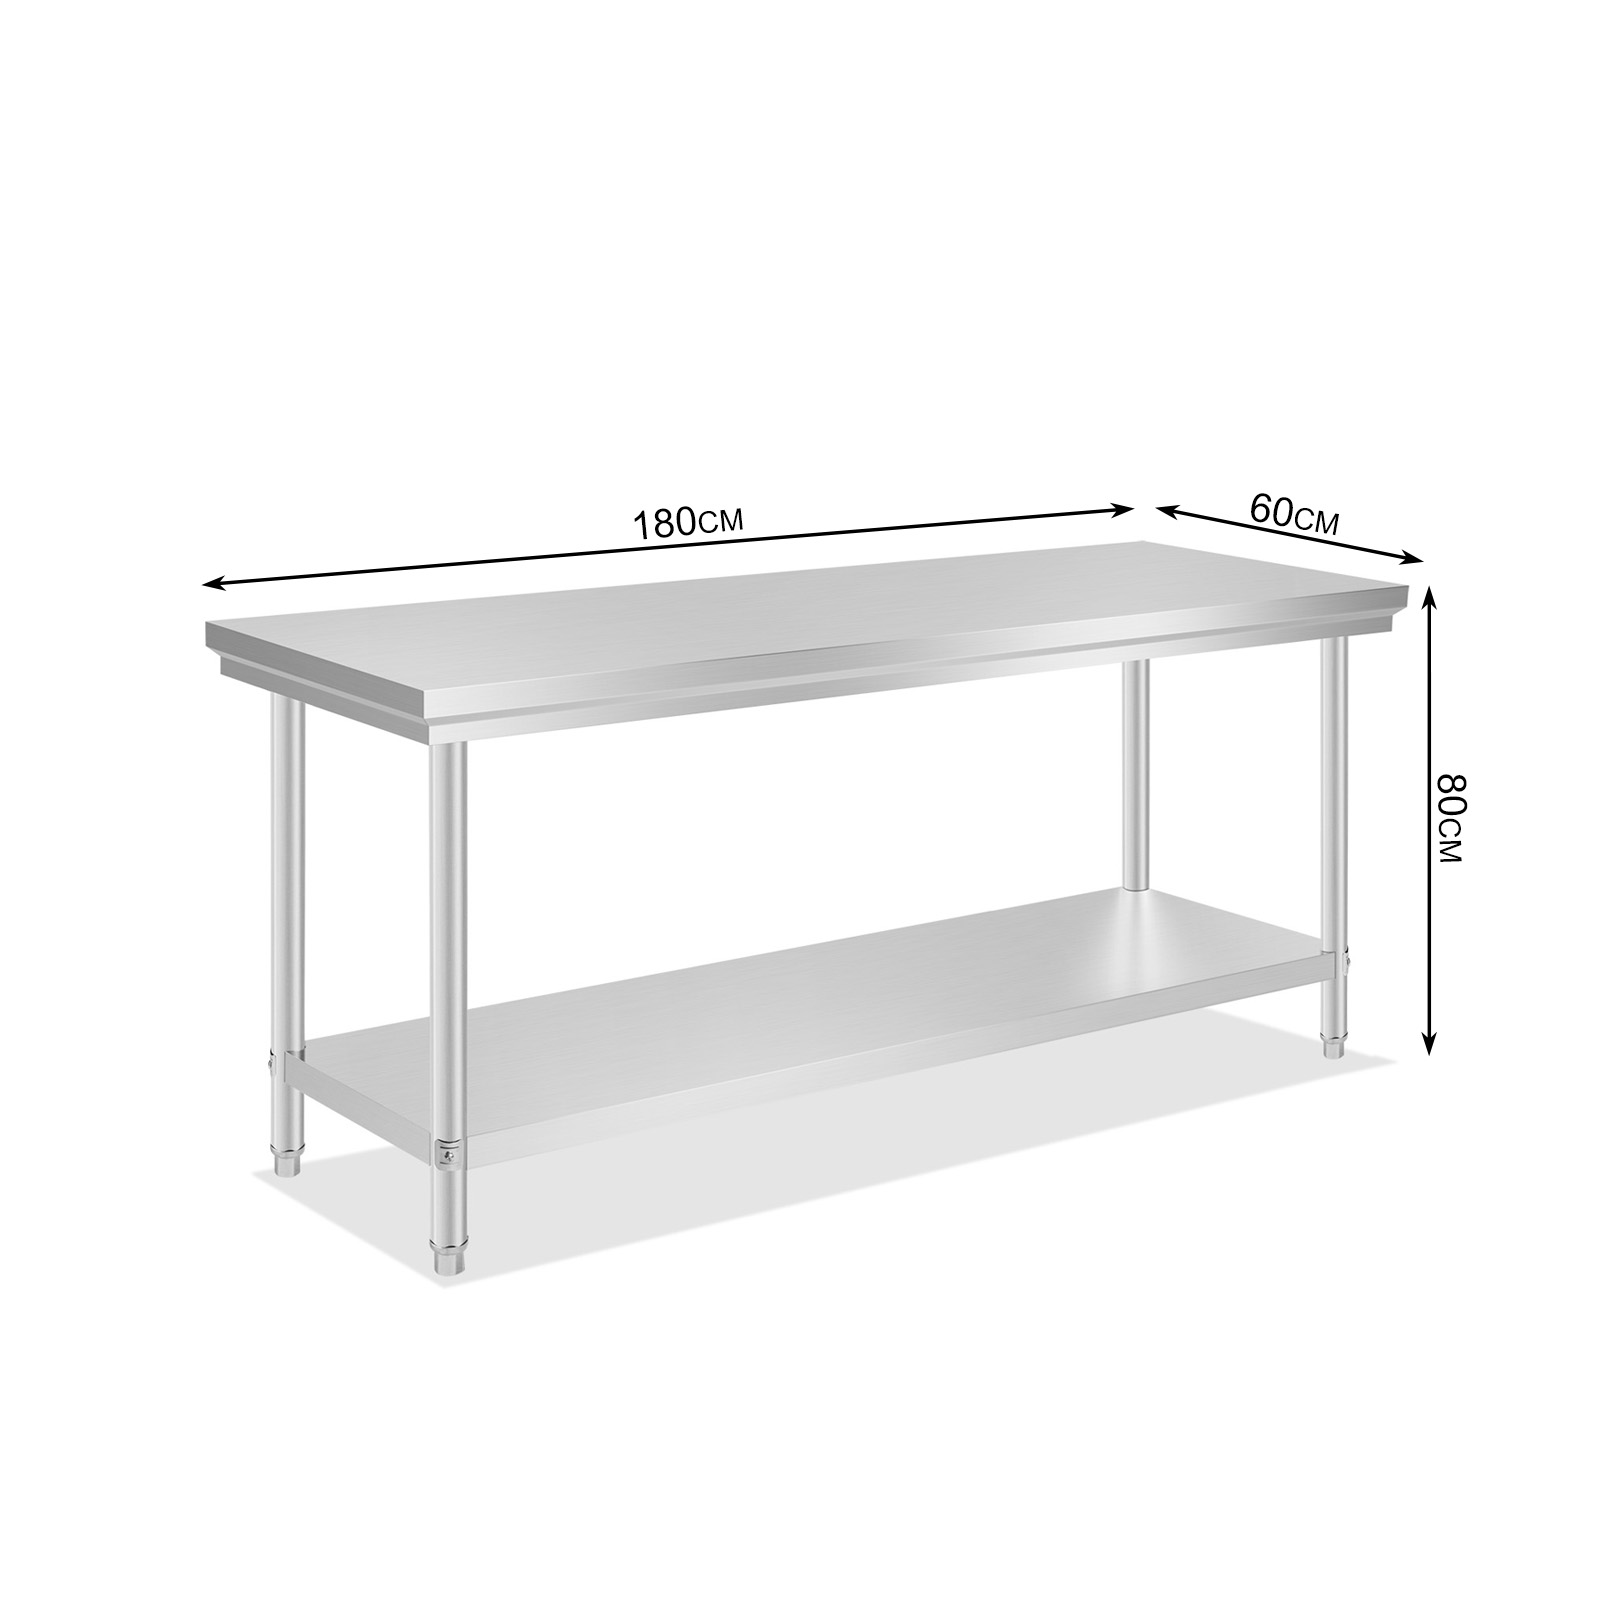 60x180cm kitchen work prep table commercial restaurant for Durable kitchen table